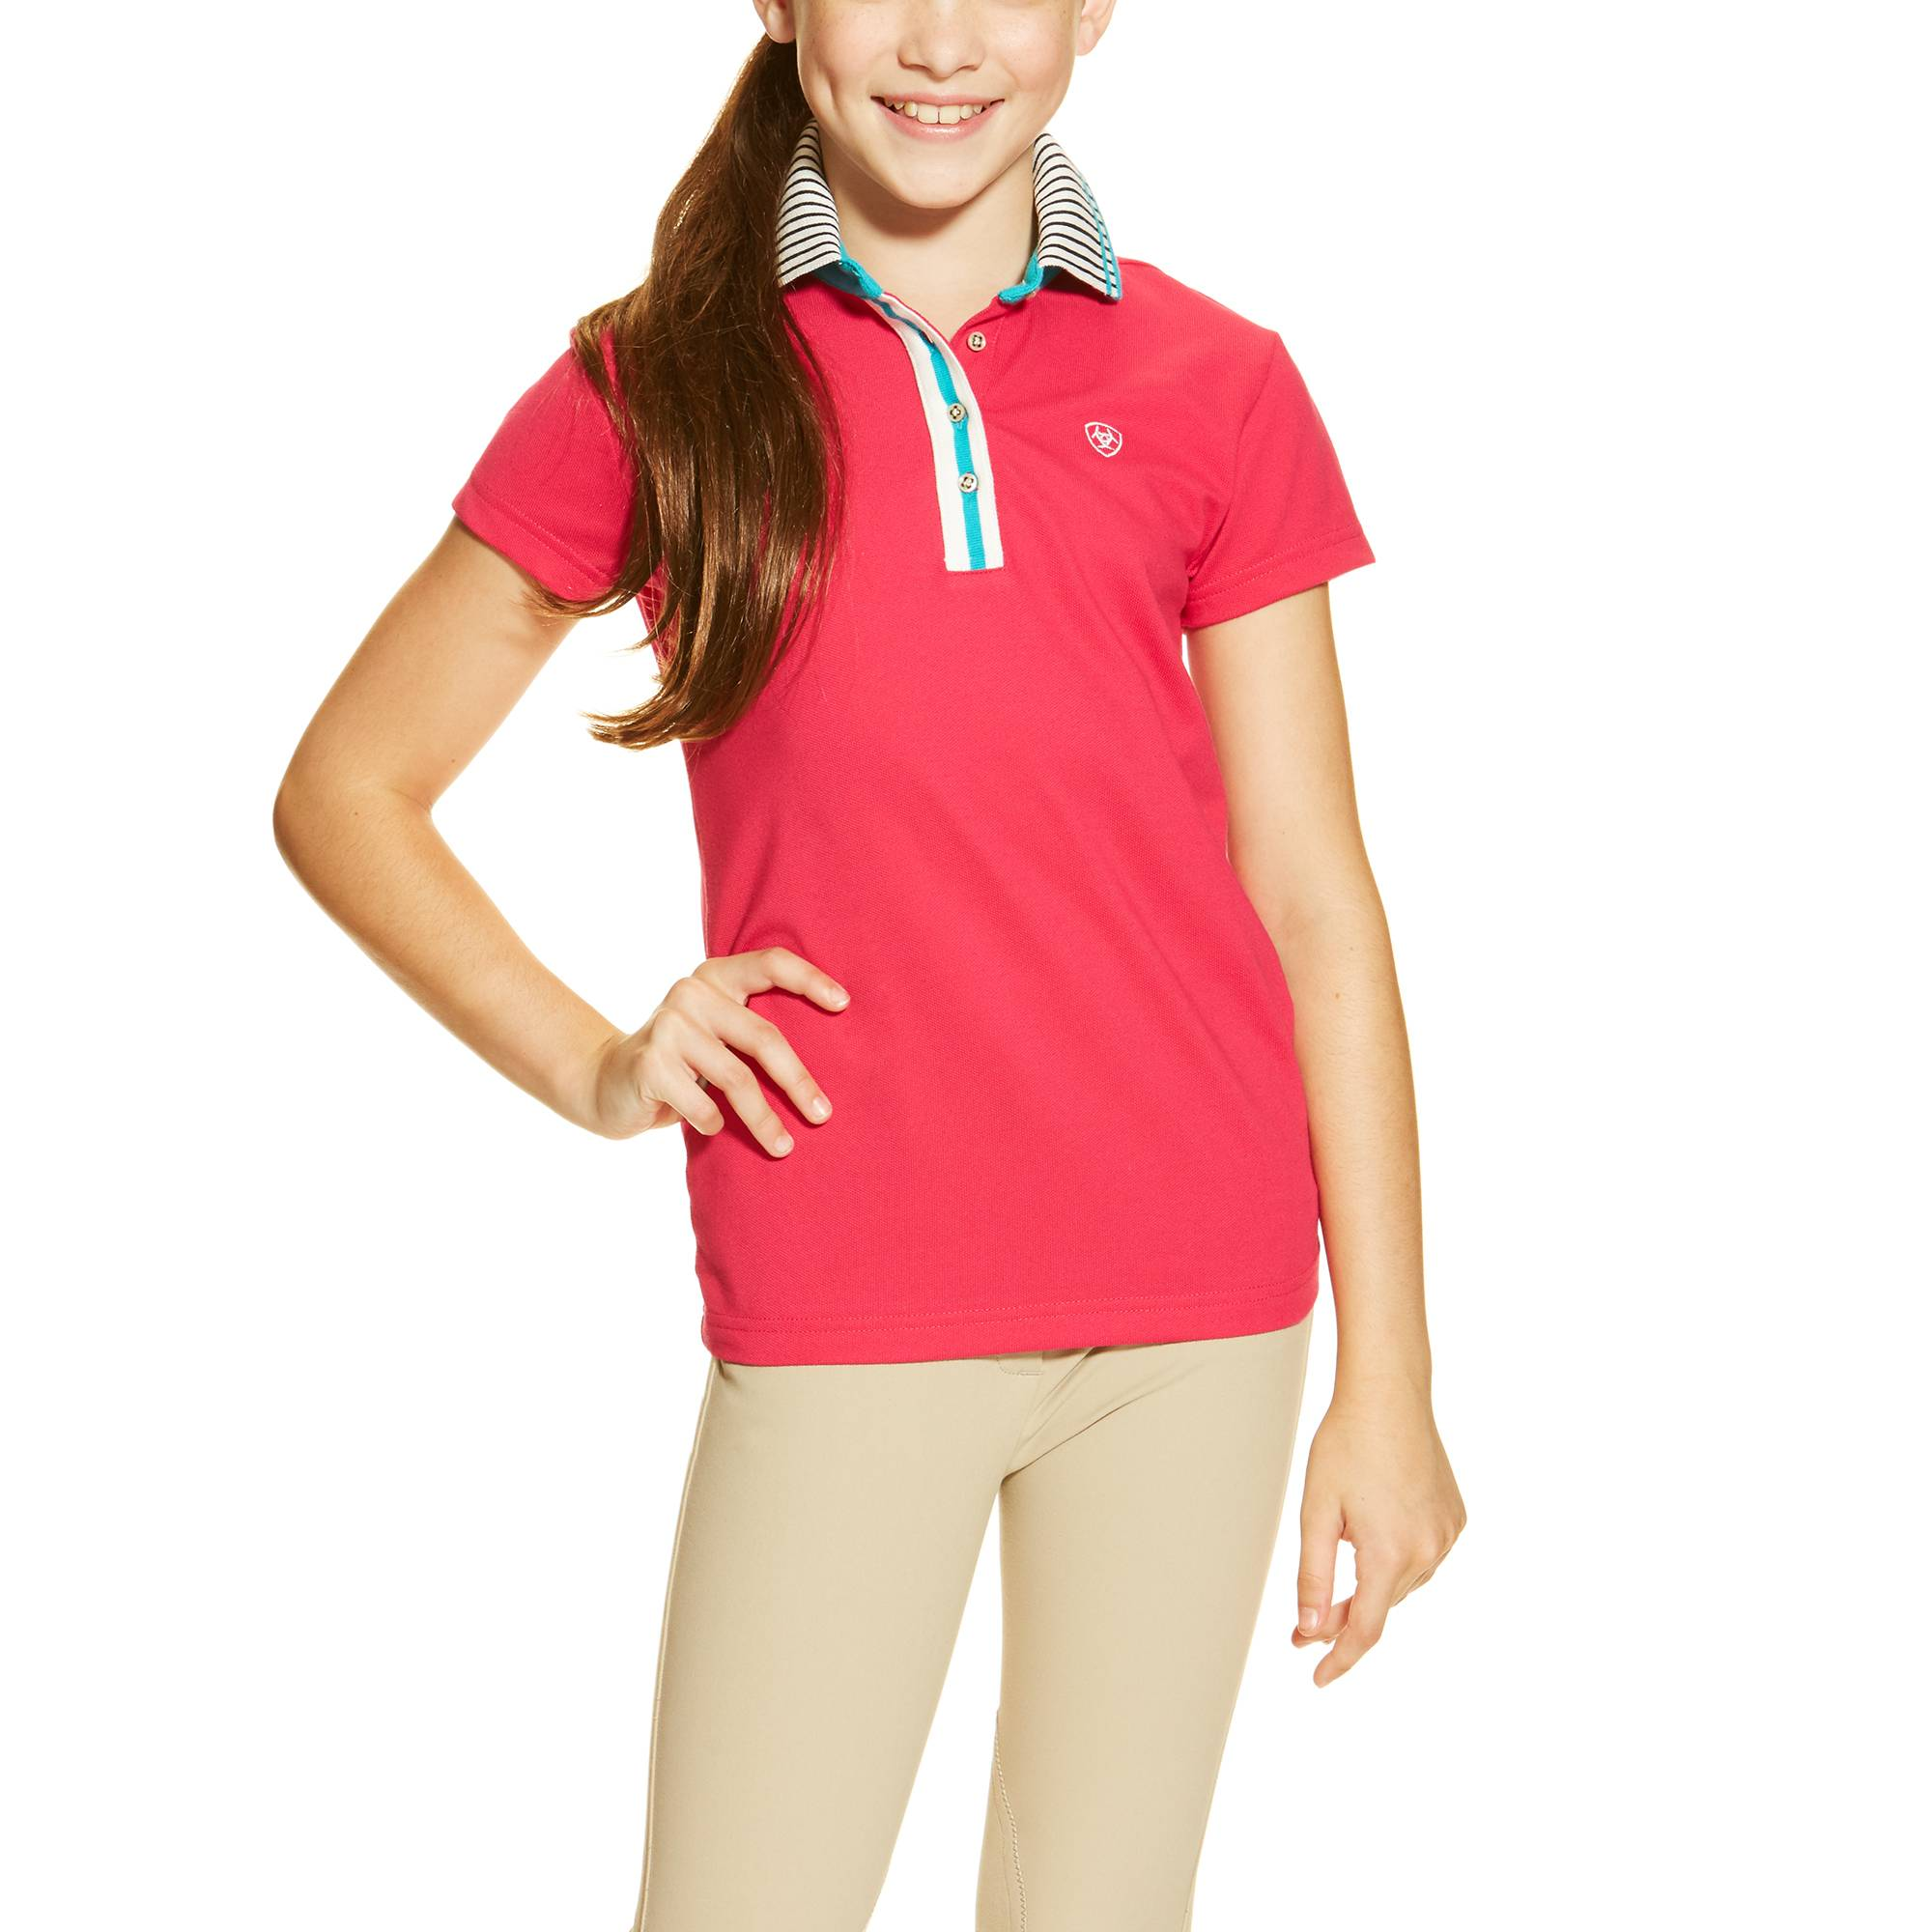 Ariat Girl's Fashion Pique Polo - Fuchsia